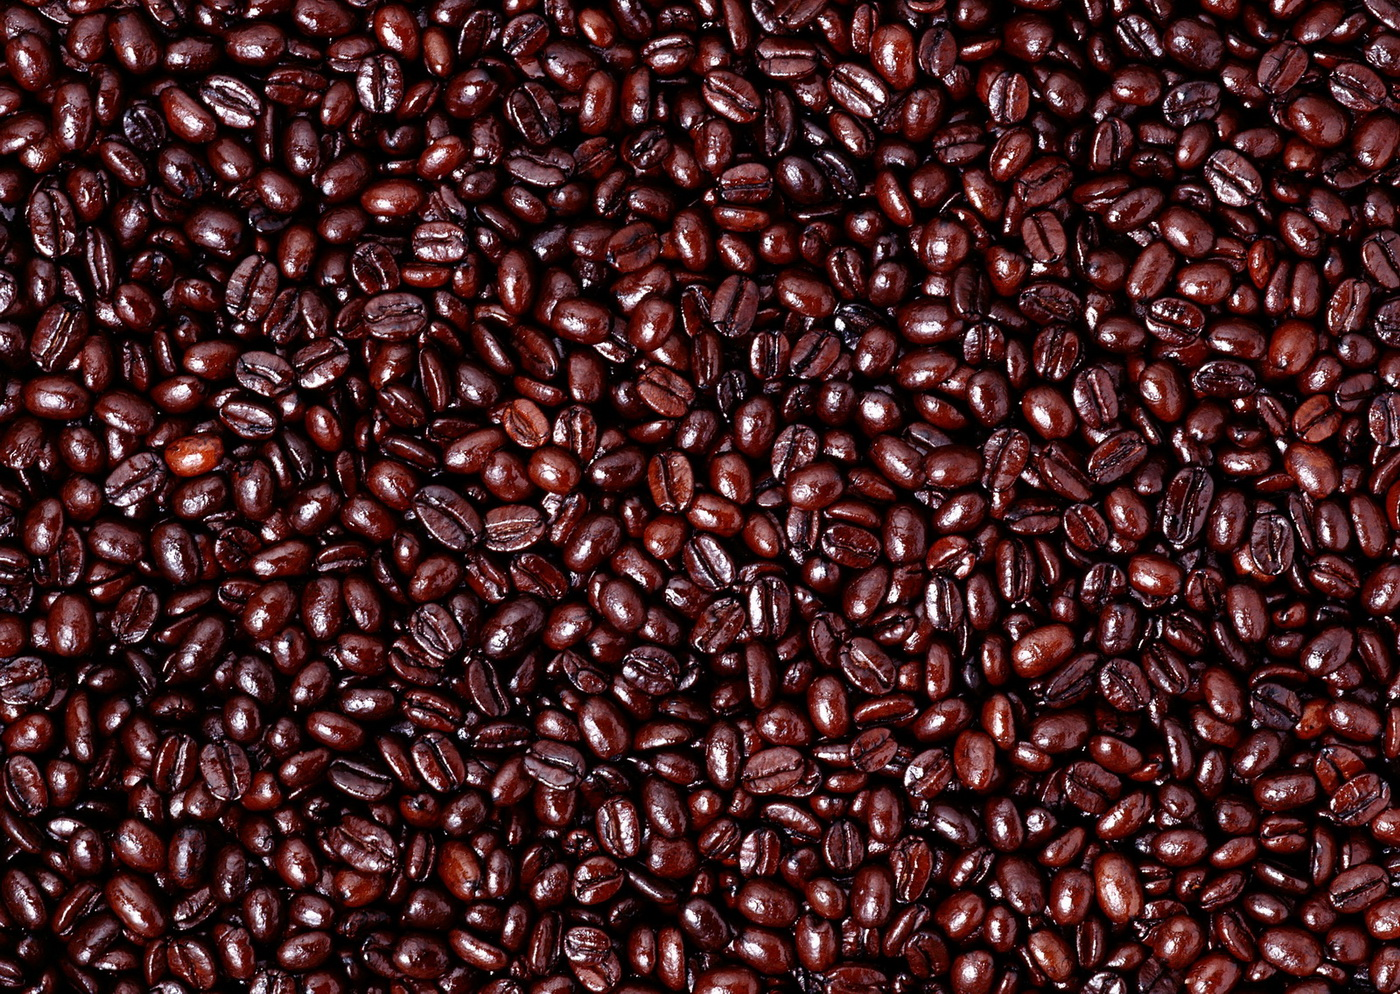 coffee, coffee beans, download photo, background, coffee, texture ...: bgfons.com/download/1529